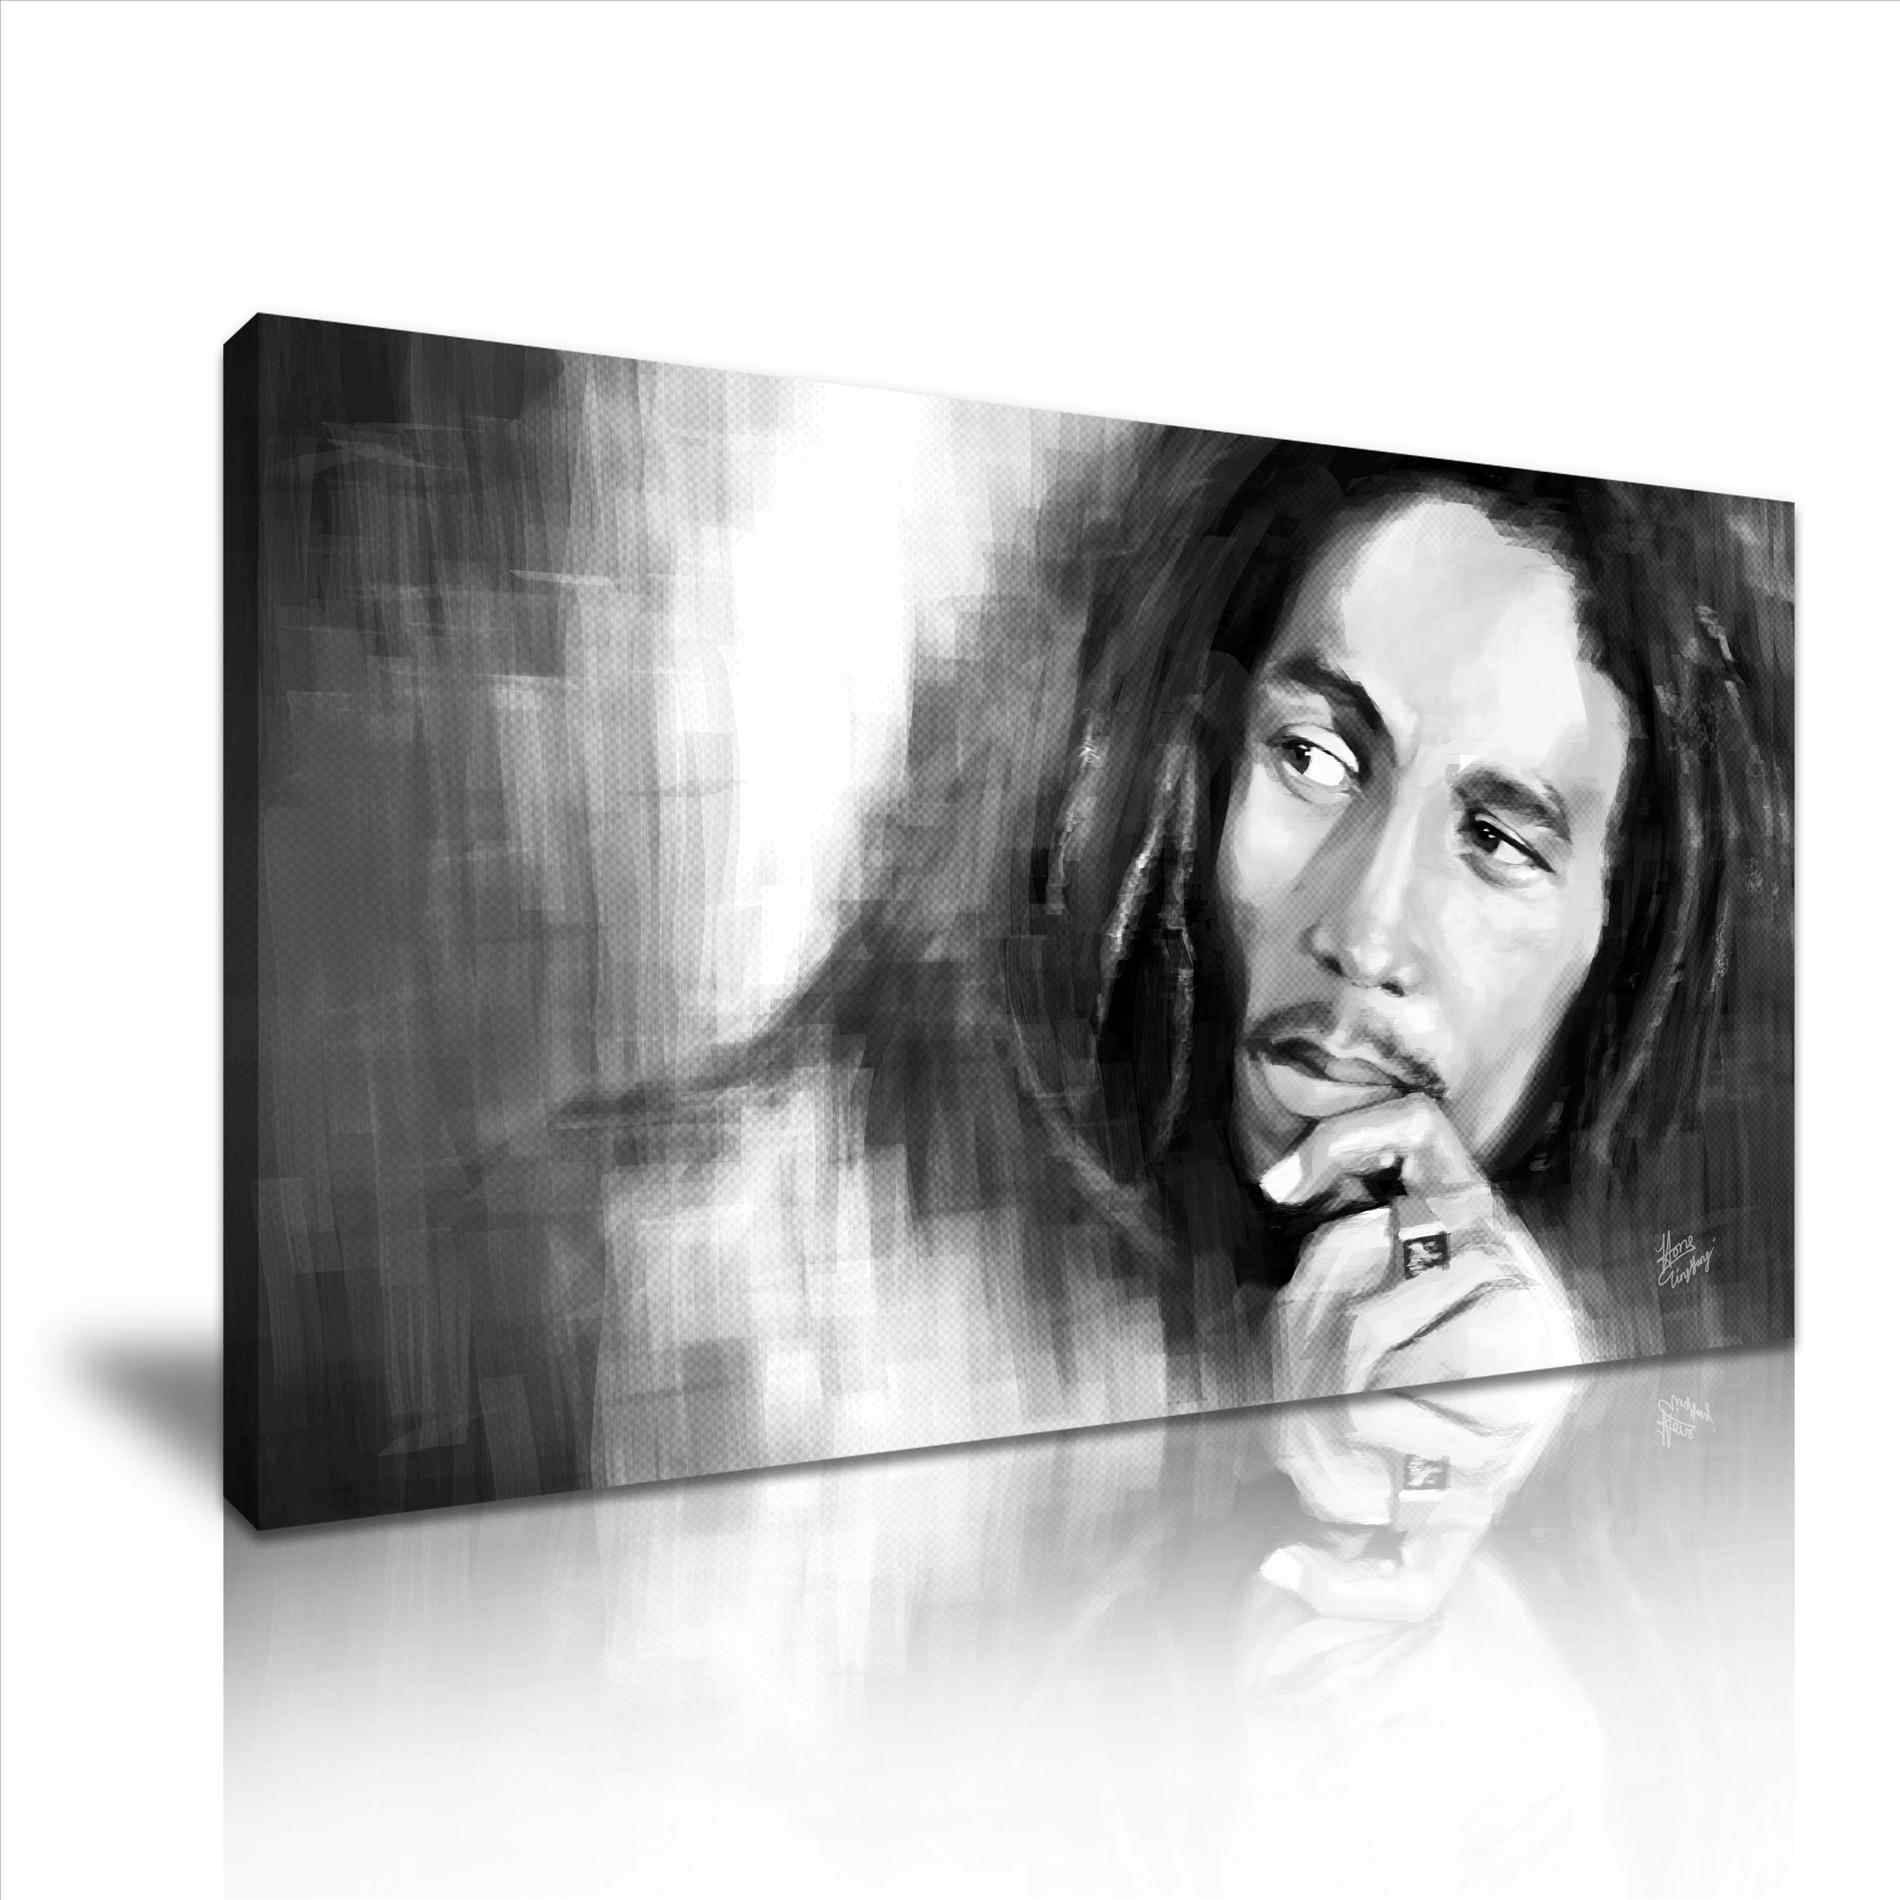 Wall Art Canvas | Home Interior Decor With Regard To Current Bob Marley Canvas Wall Art (View 25 of 25)